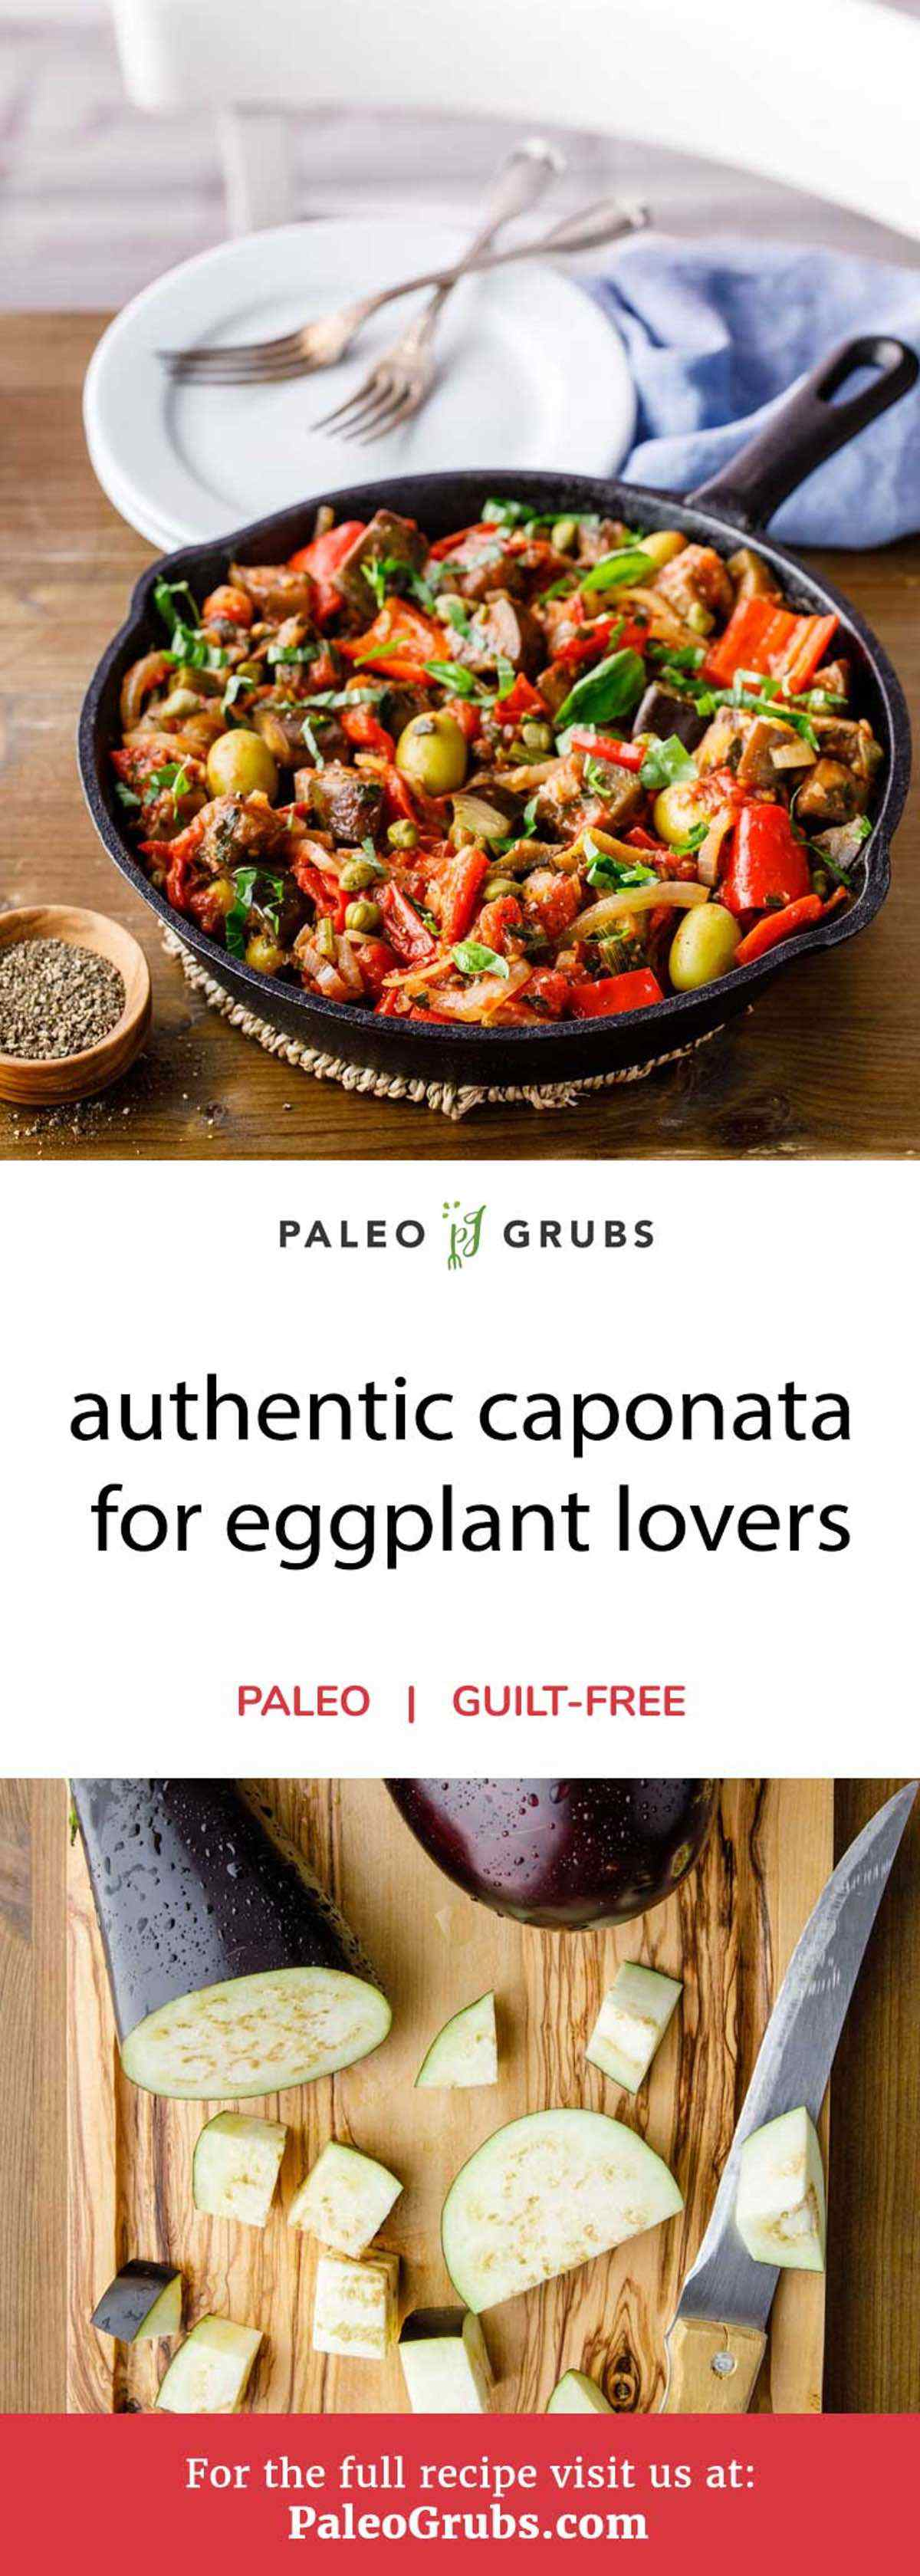 Take your homecooked meals to the next level with the fresh aroma and taste of a caponata made with colorful vegetables and fruits. Its flavors come from a unique blend of herbs and spices that make for an excellent vegetarian dish. A caponata is versatile in that it can be paired with some grilled herbed chicken breast or even a roasted rack of lamb. It's not the easiest dish to prepare paleo-style, but it's well worth the effort.